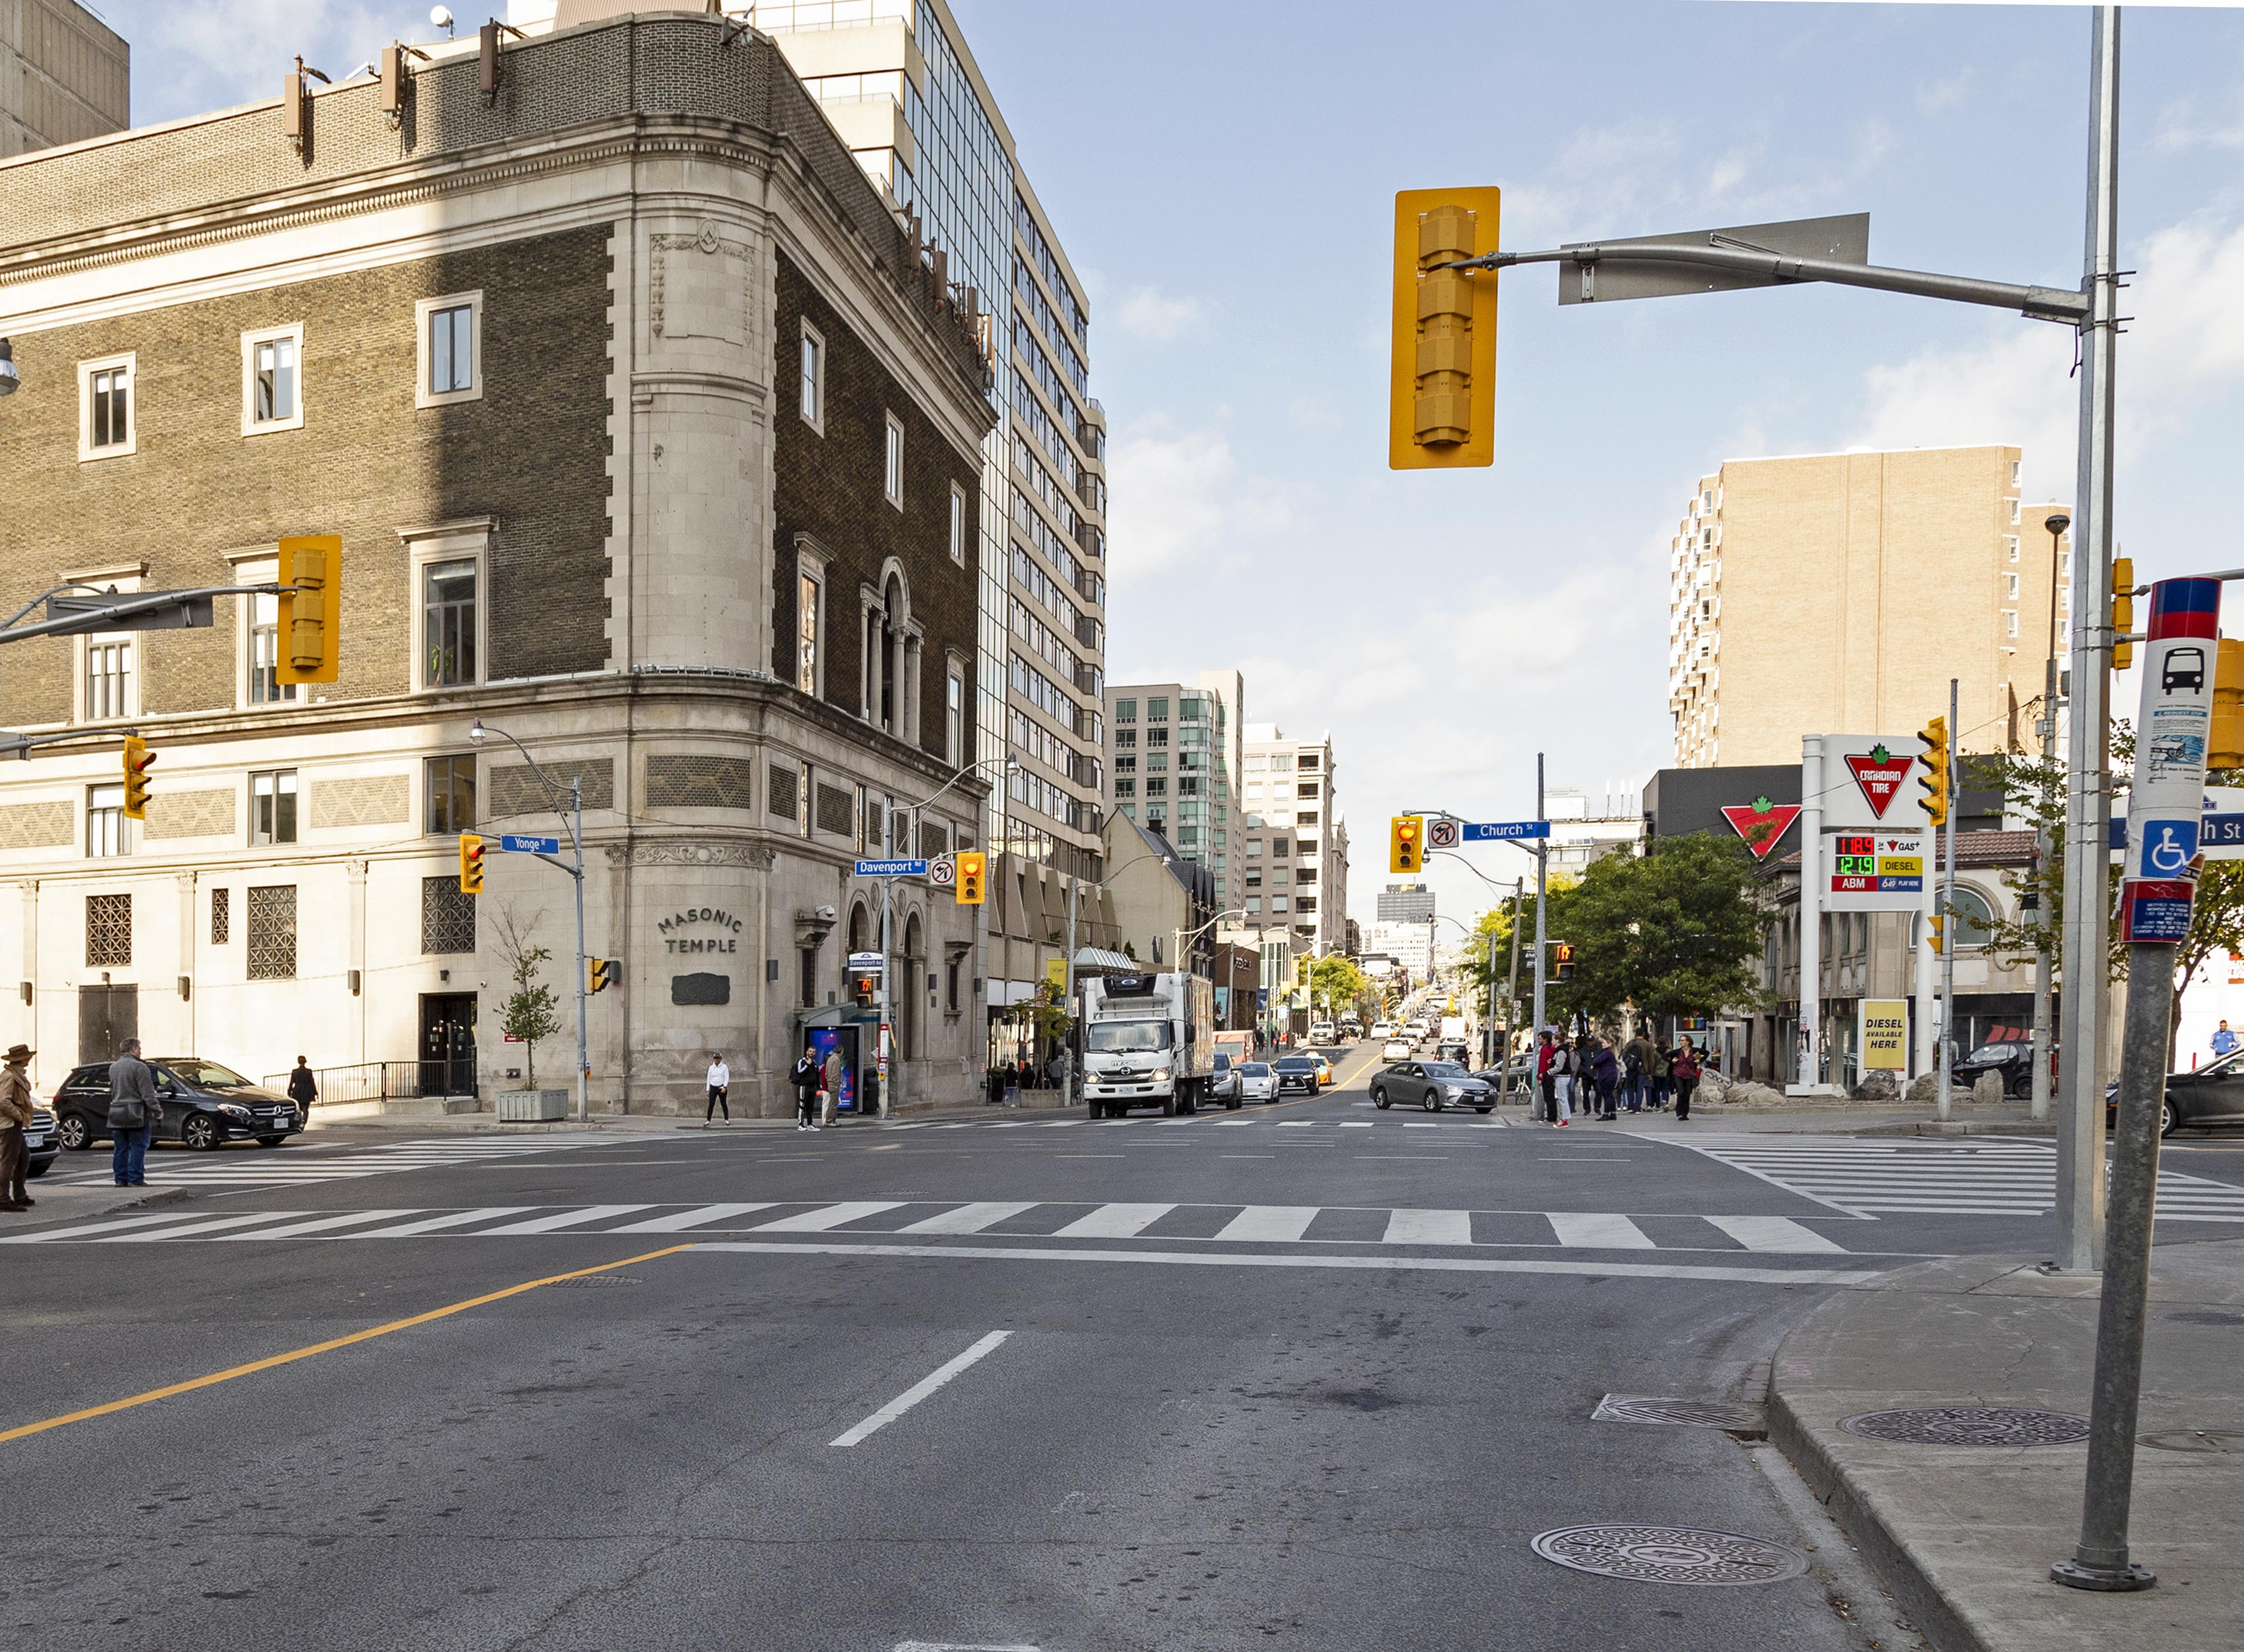 An intersection with a mid-rise building curving around the far corner. Hydro poles and a bus stop are on the right side of the image. Traffic lights are also found at the intersection.